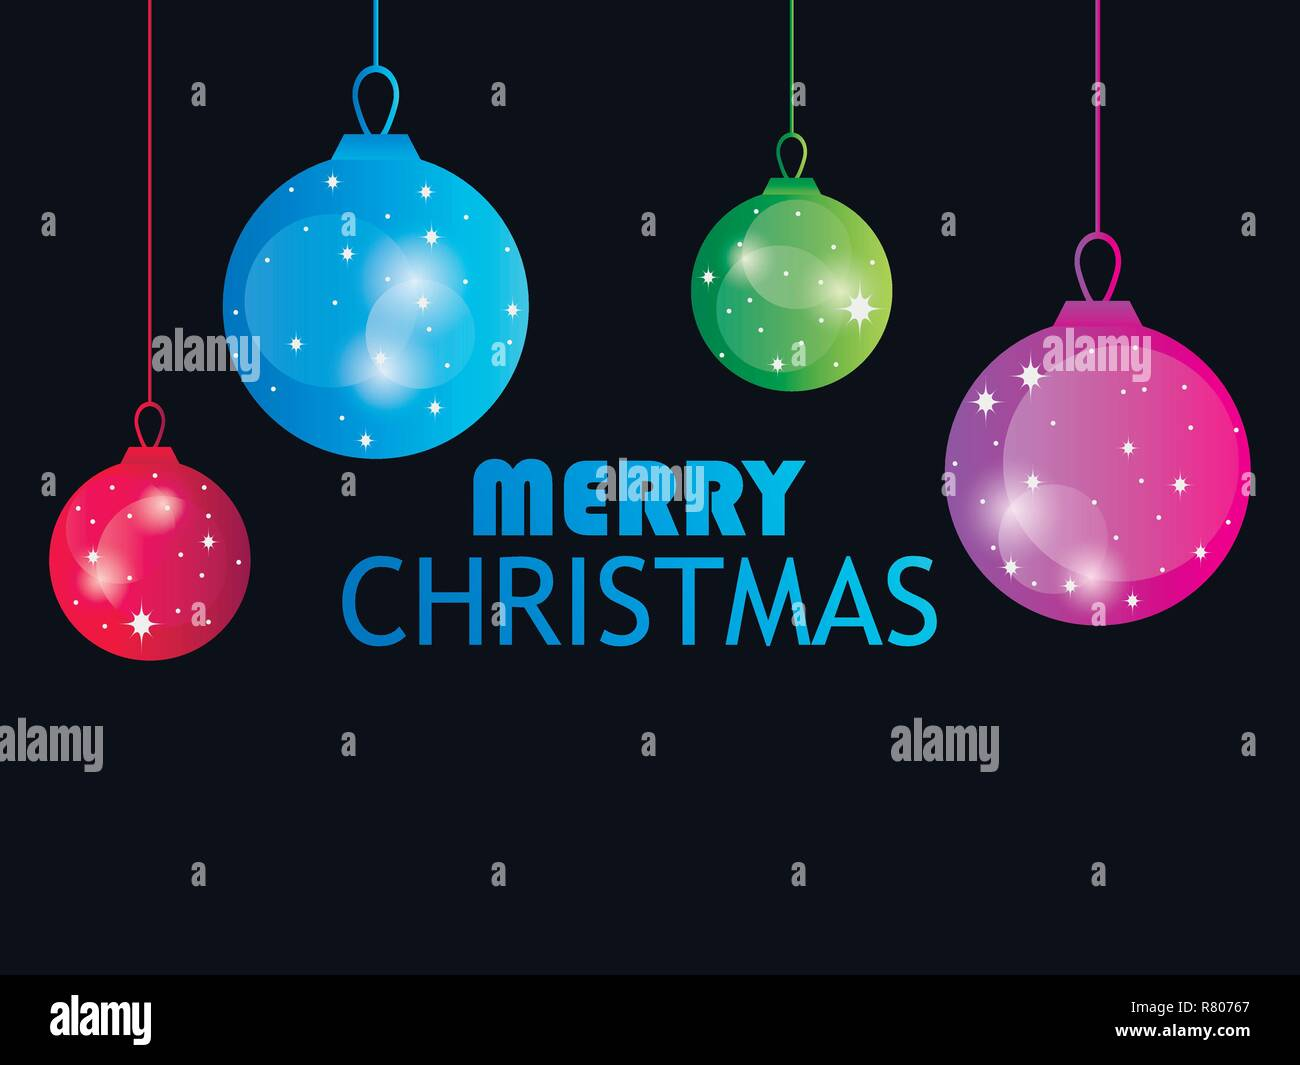 Merry Christmas. Hanging Christmas balls on black background. Multi colored gradient. Bokeh effect. Vector illustration - Stock Vector